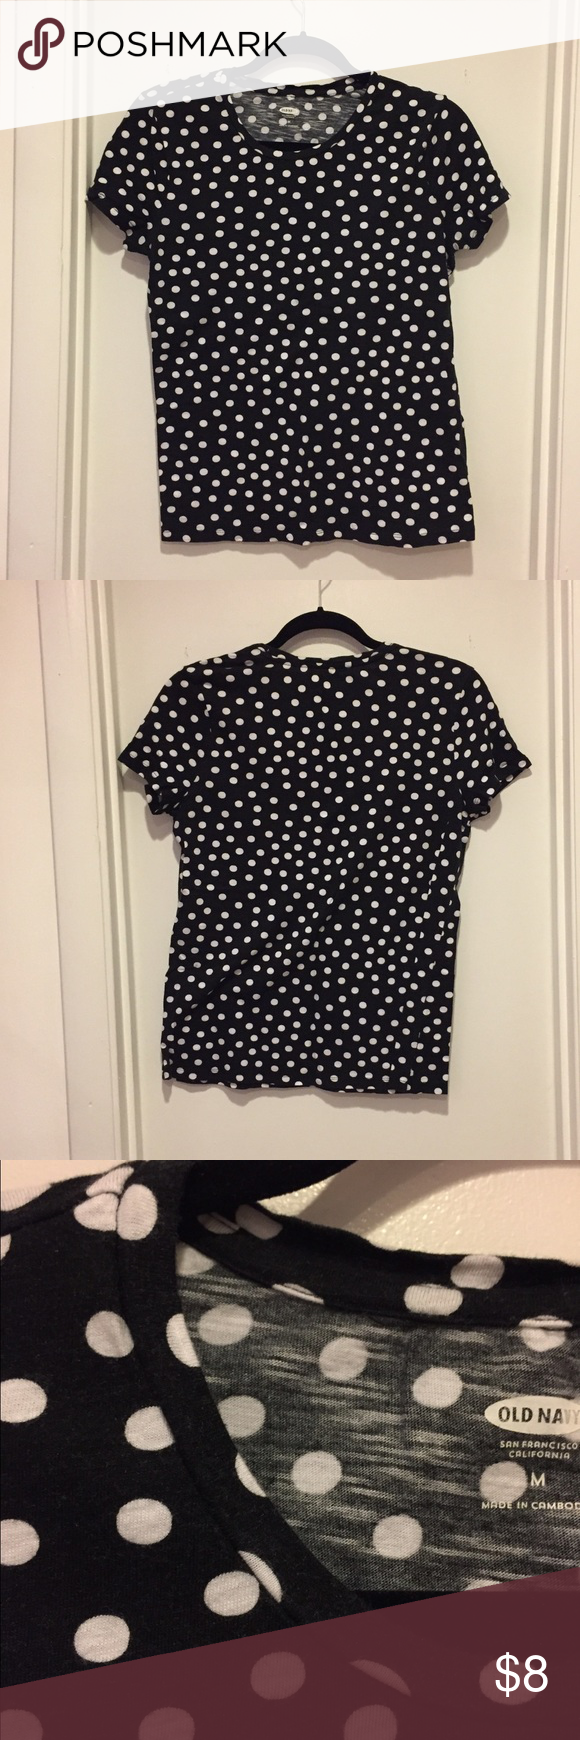 Black and white polka dot tee Black and white polka dot tee. Excellent condition! 60% cotton 40% modal. Old Navy Tops Tees - Short Sleeve